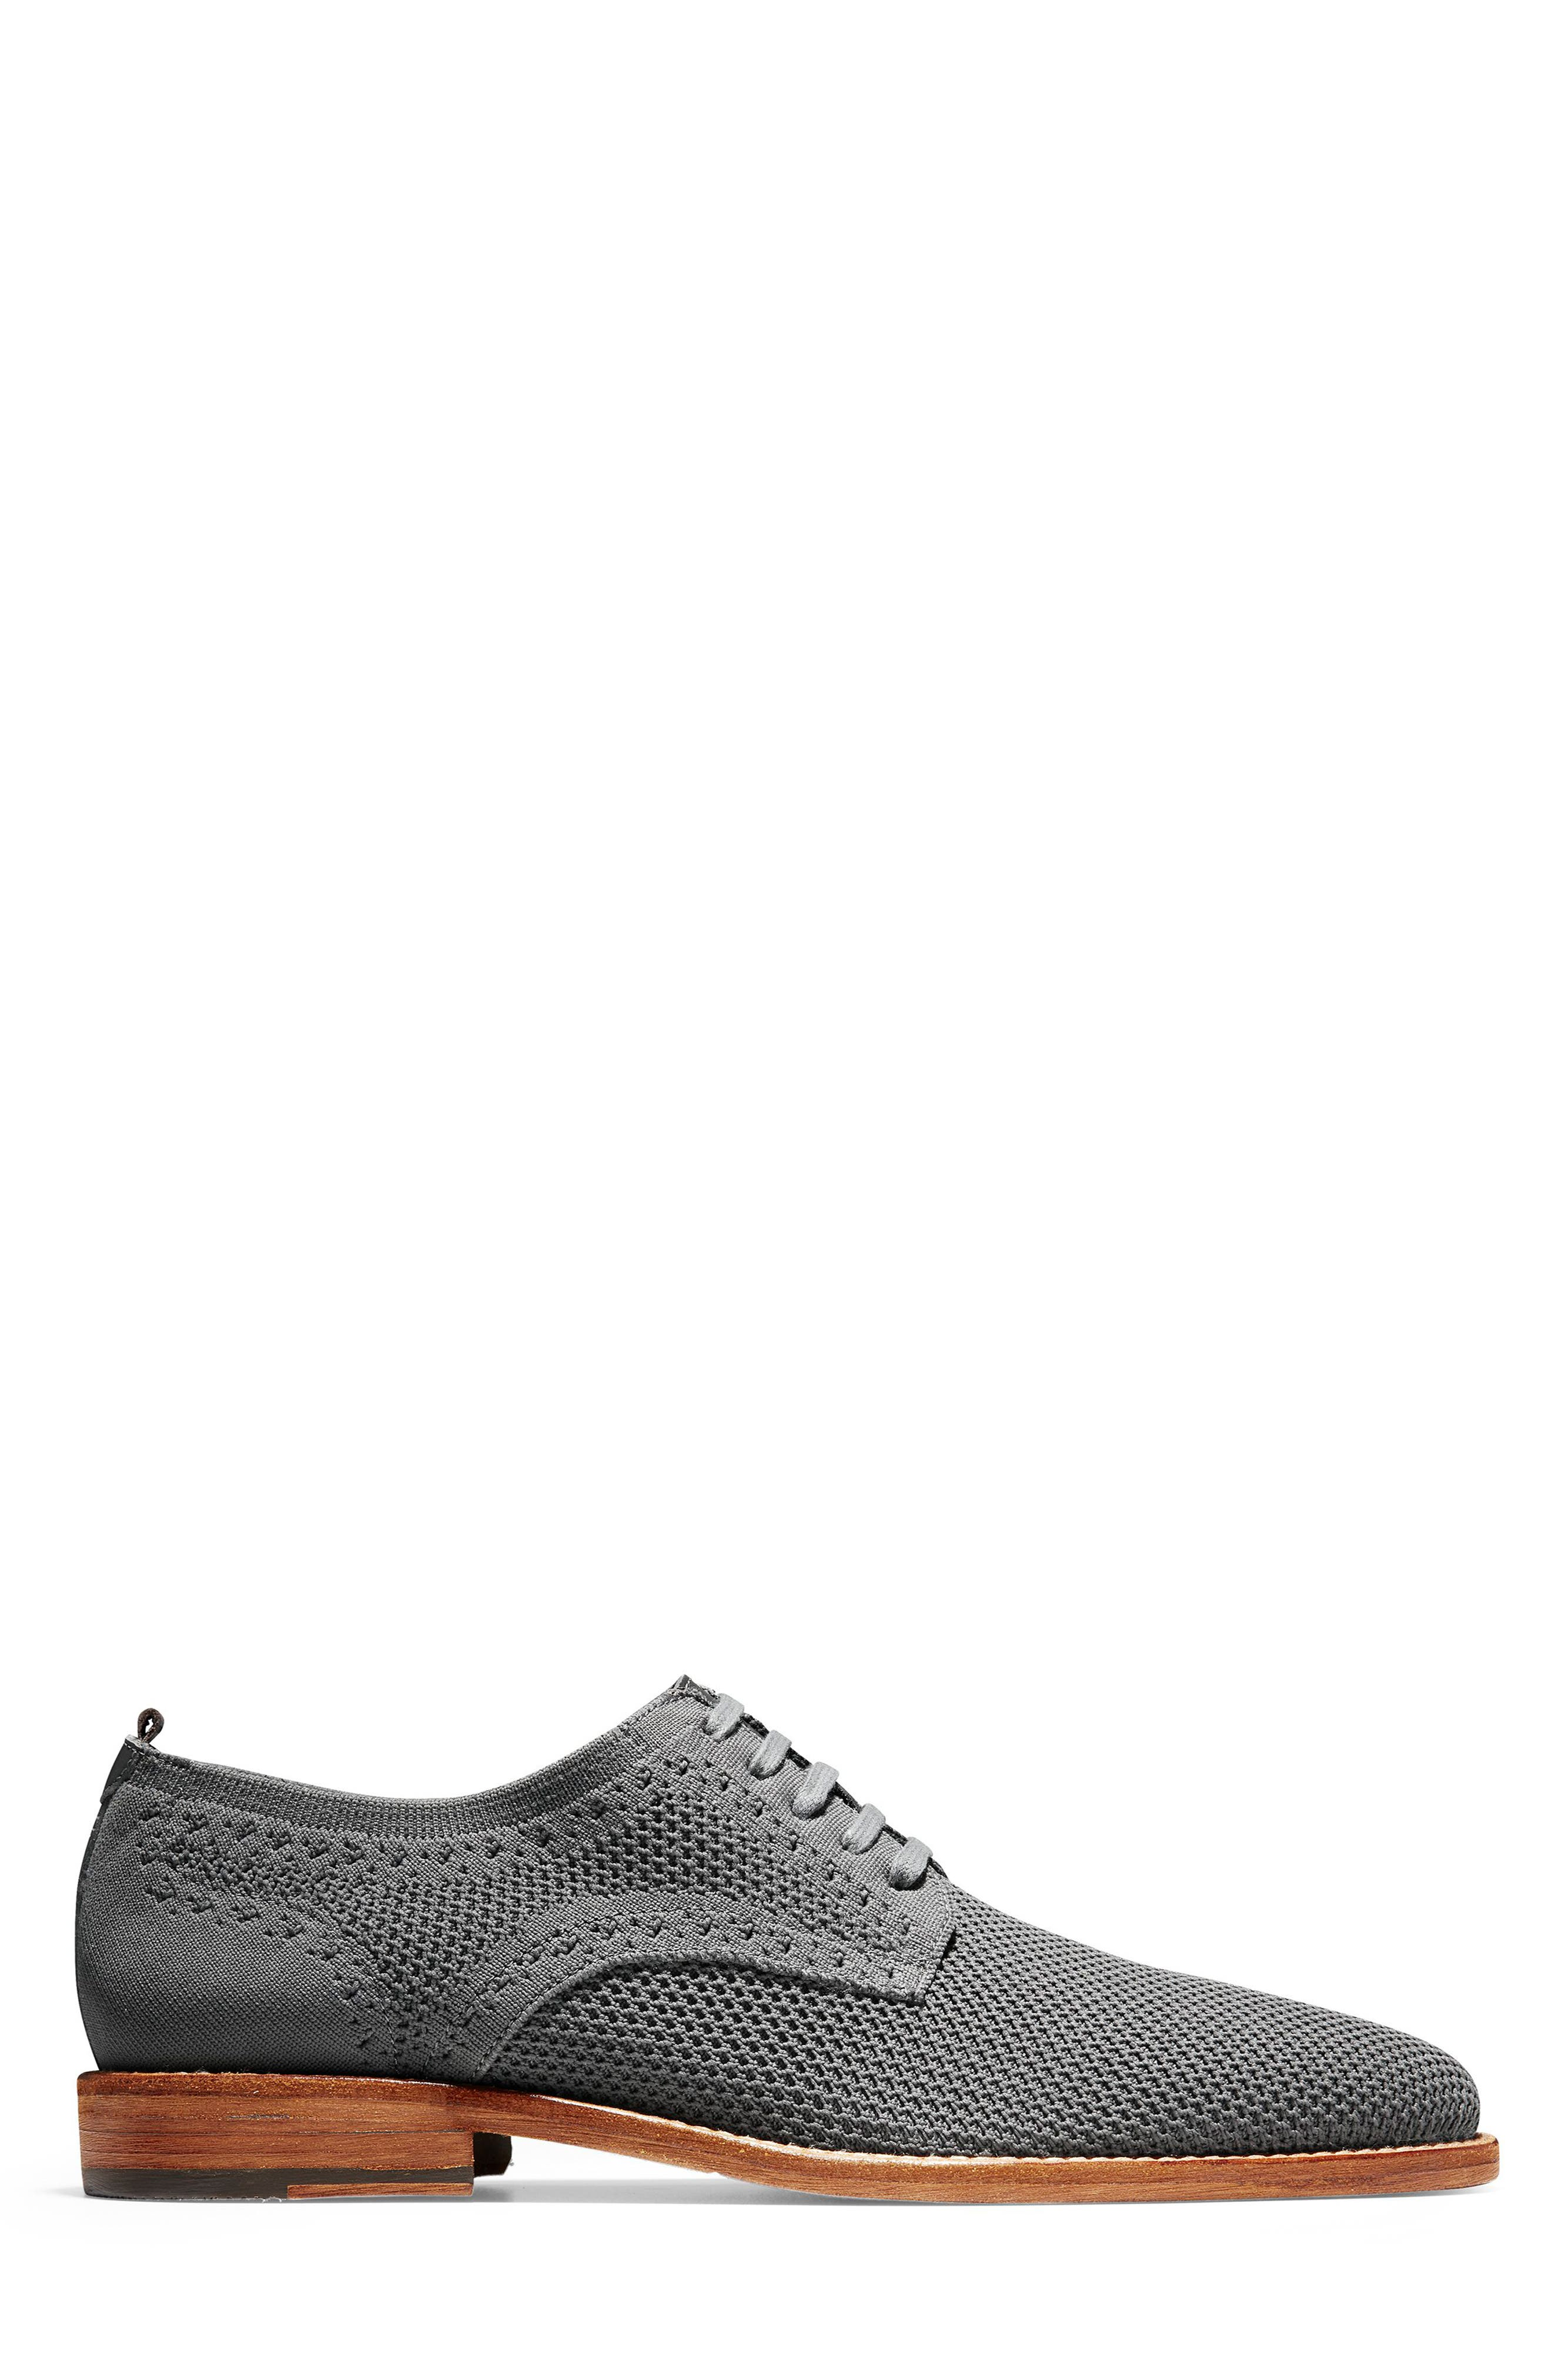 COLE HAAN, Feathercraft Grand Stitchlite Plain Toe Derby, Alternate thumbnail 3, color, MAGNET KNIT